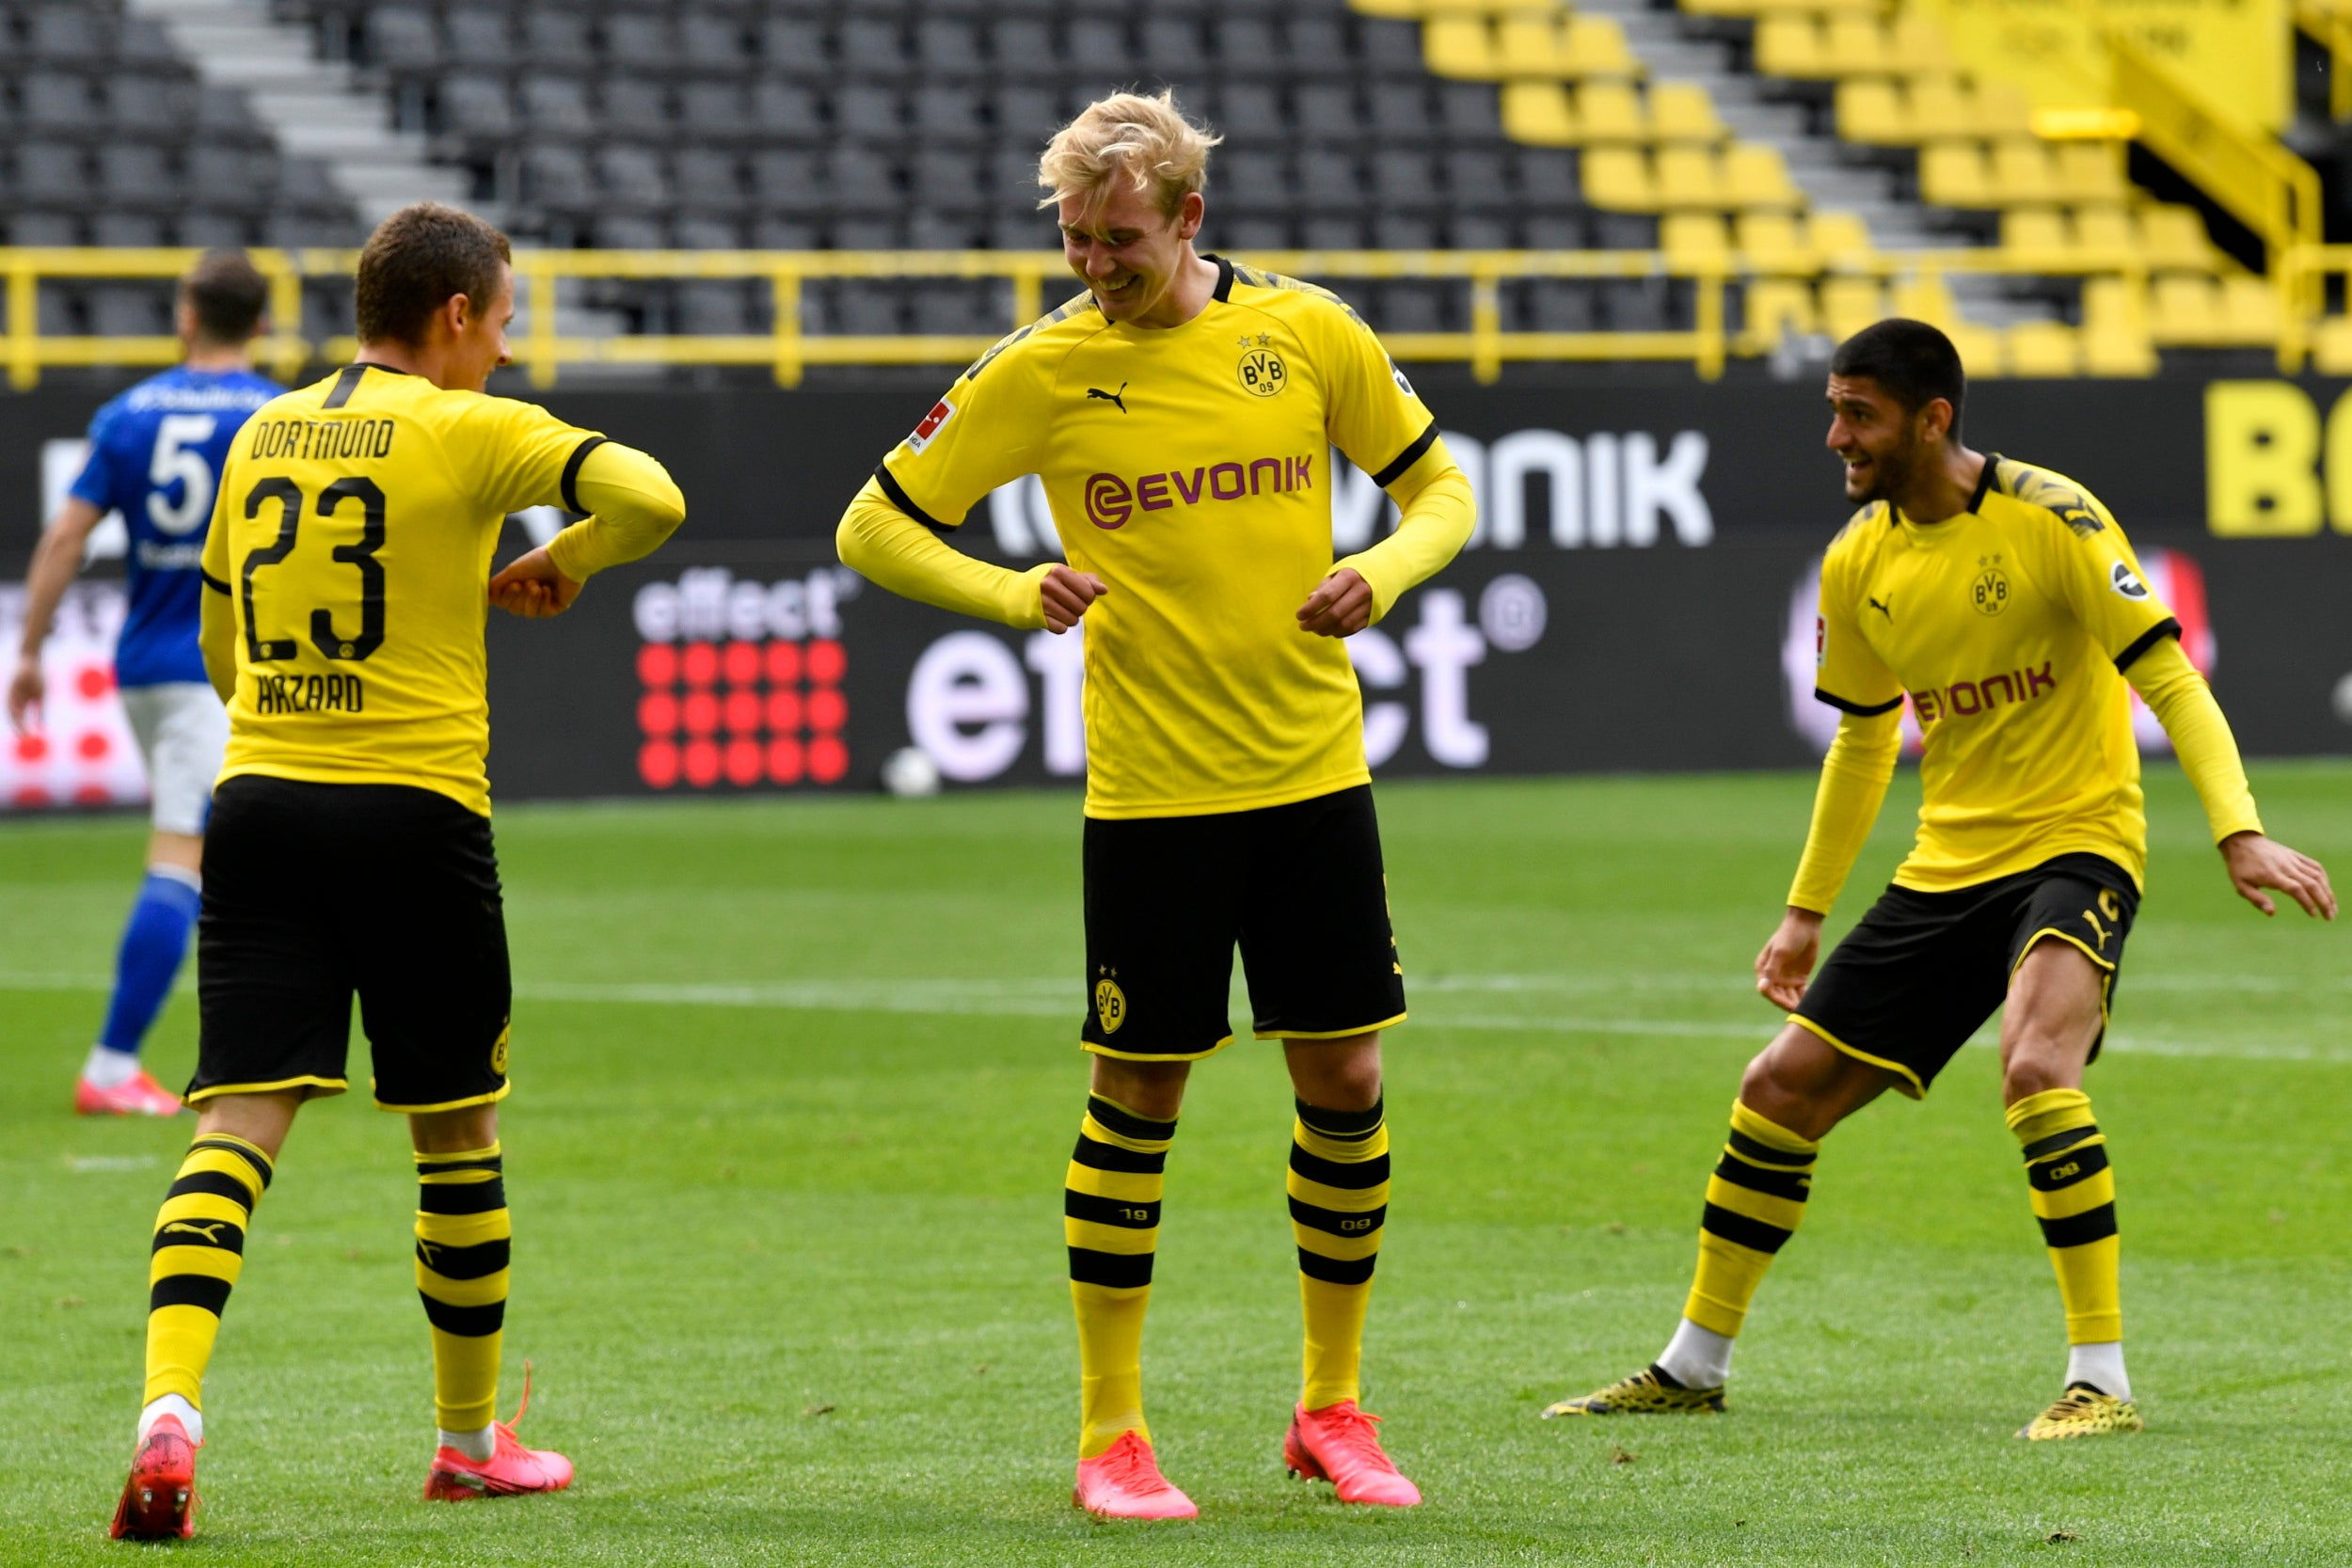 Watch Wolfsburg vs Borussia Dortmund Live Streaming